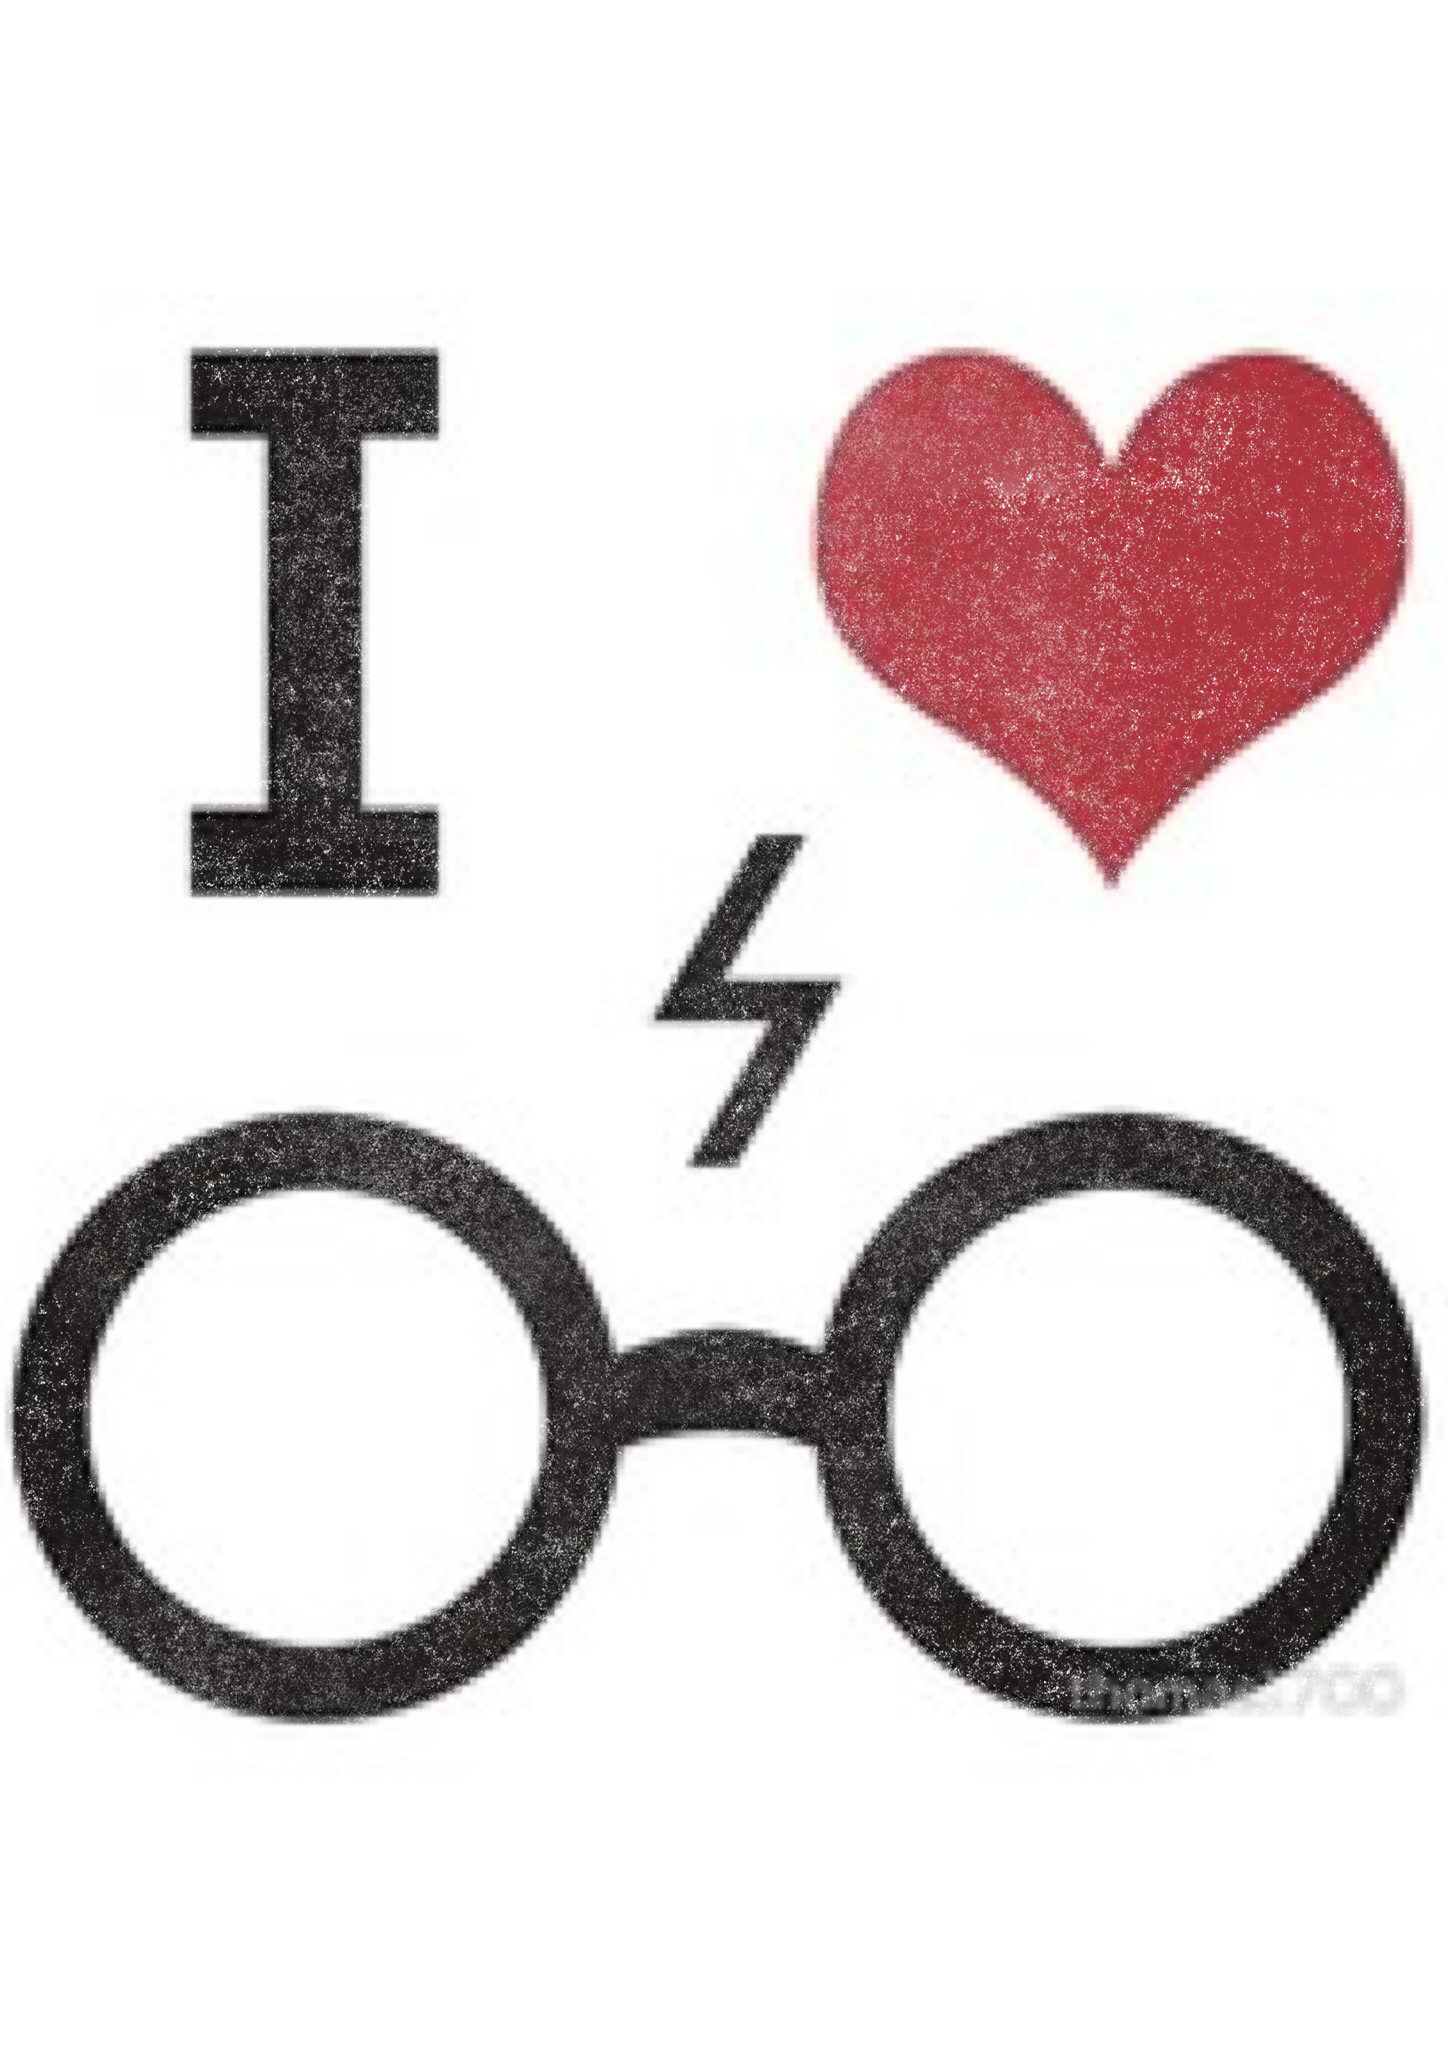 iPhone wallpaper for Harry Potter fans